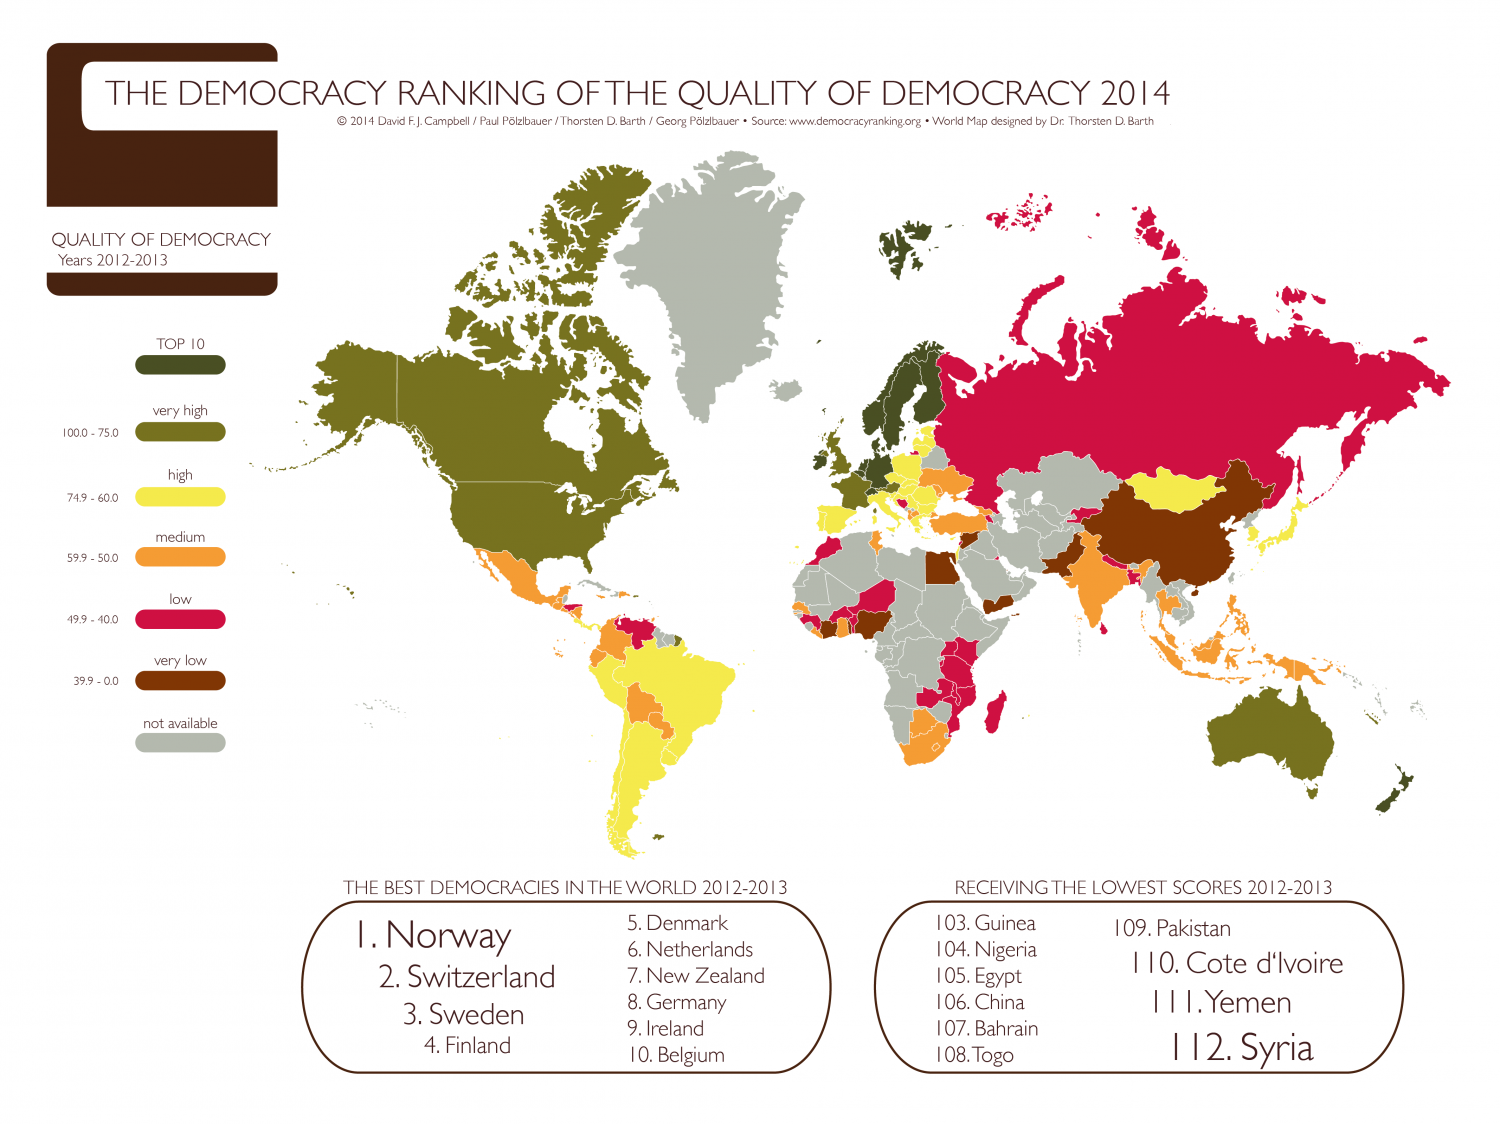 The Democracy Ranking of the Quality of Democracy 2014 (Covered Years 2012-2013)  Infographic